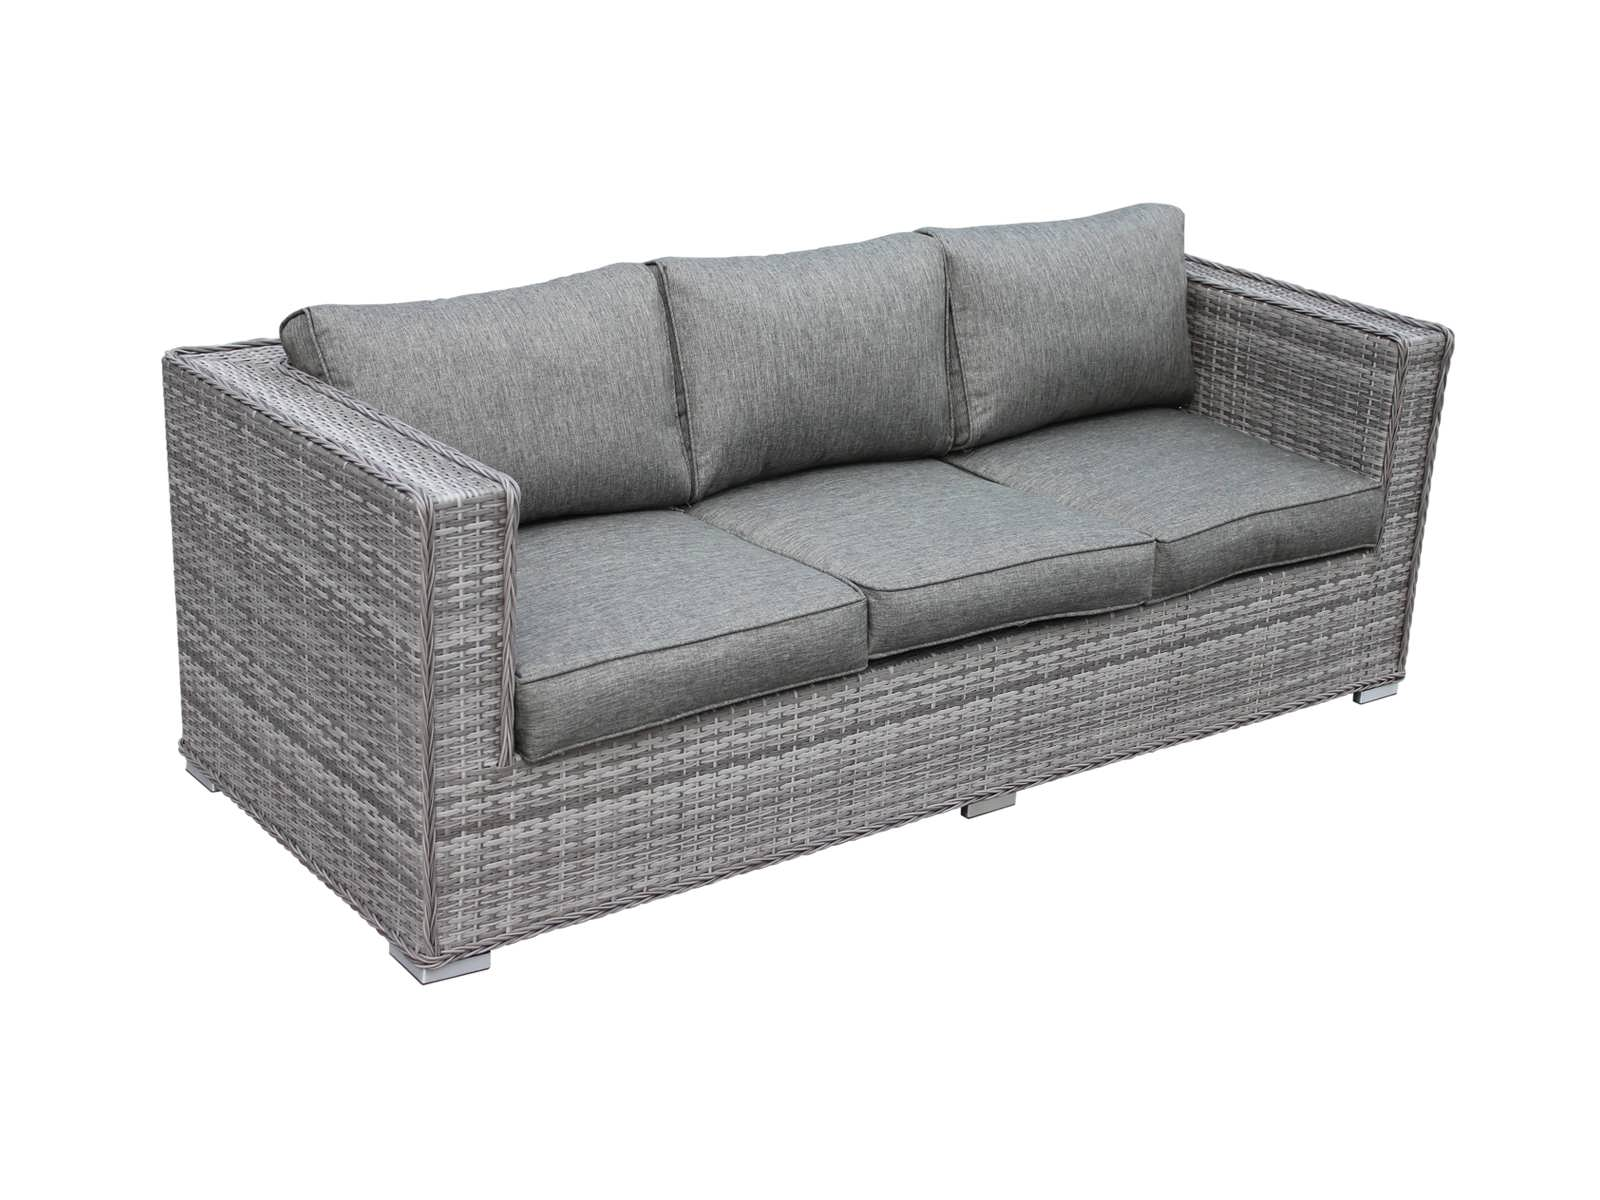 ascot 3 seat outdoor rattan sofa in grey OBULYNR